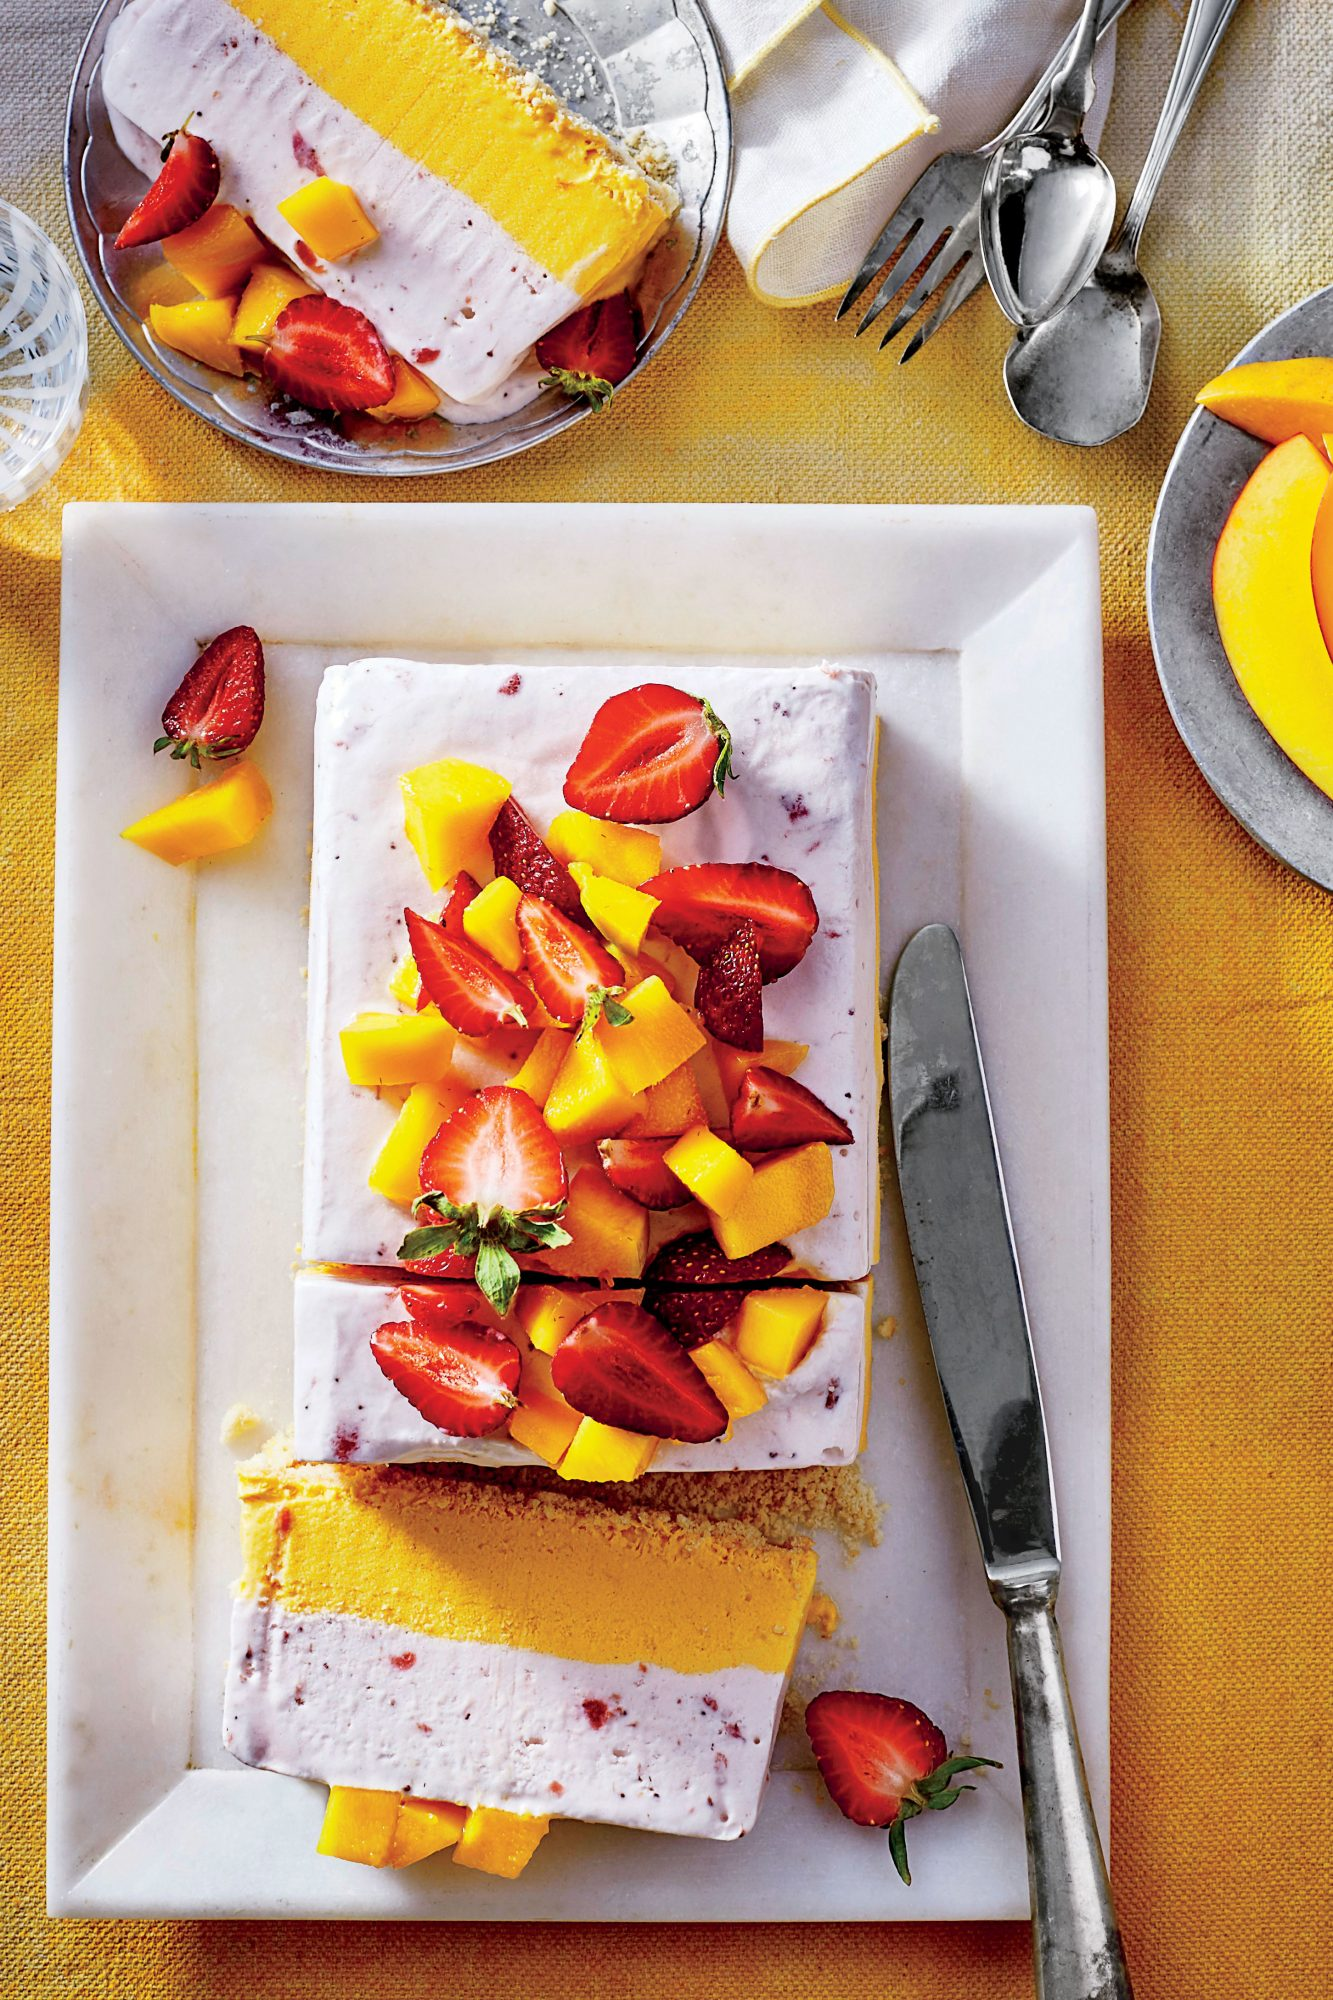 Strawberry-Mango Semifreddo